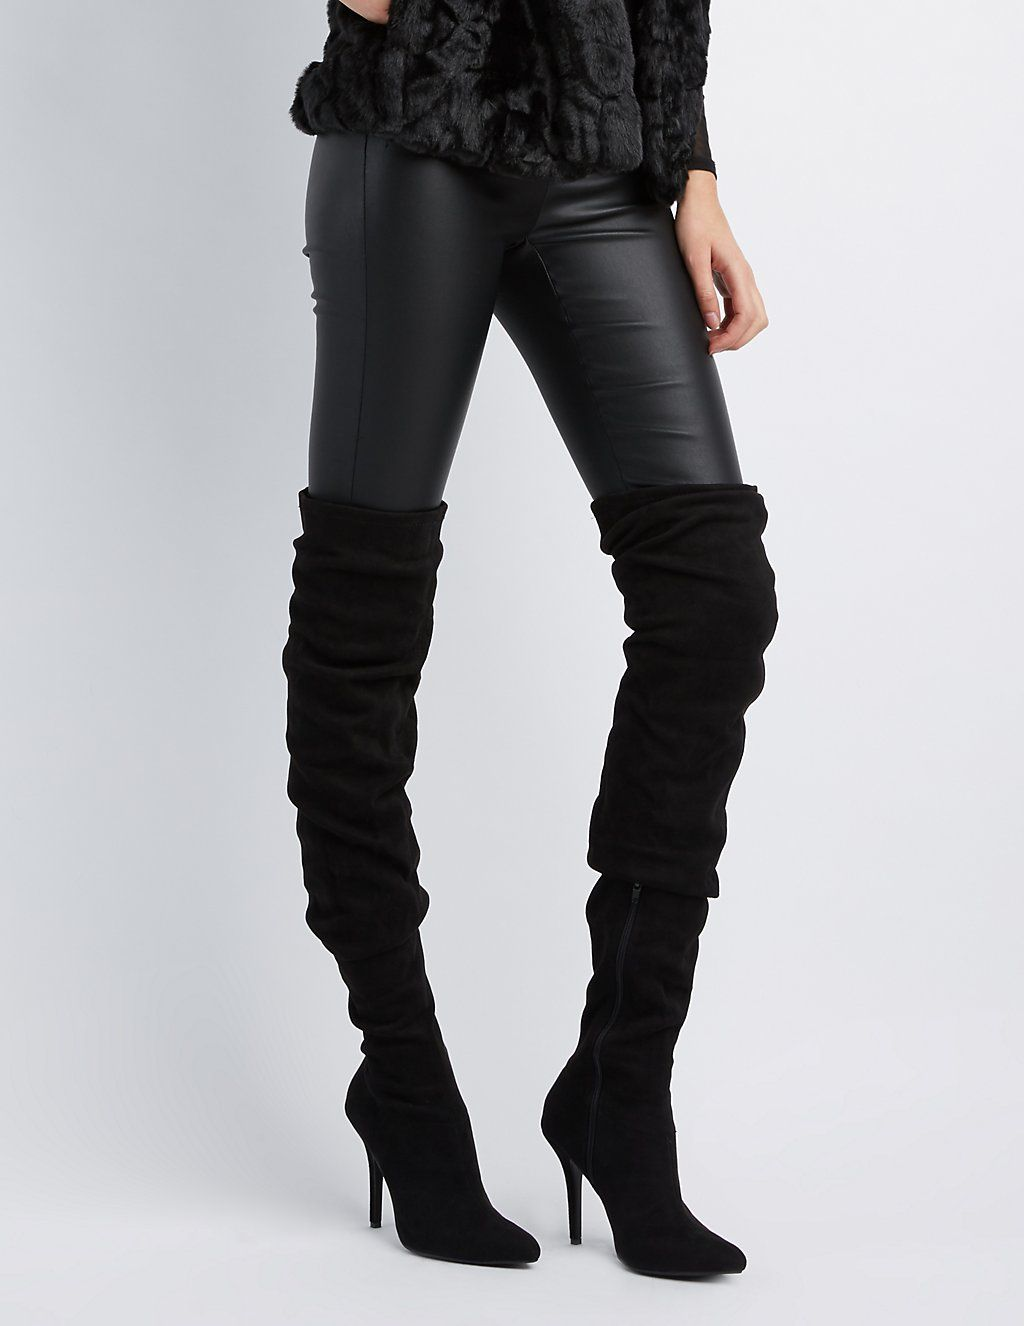 4c4bee1e5ab3 Faux Suede Ruched Pointed Toe Over-The-Knee Boots | Charlotte Russe ...